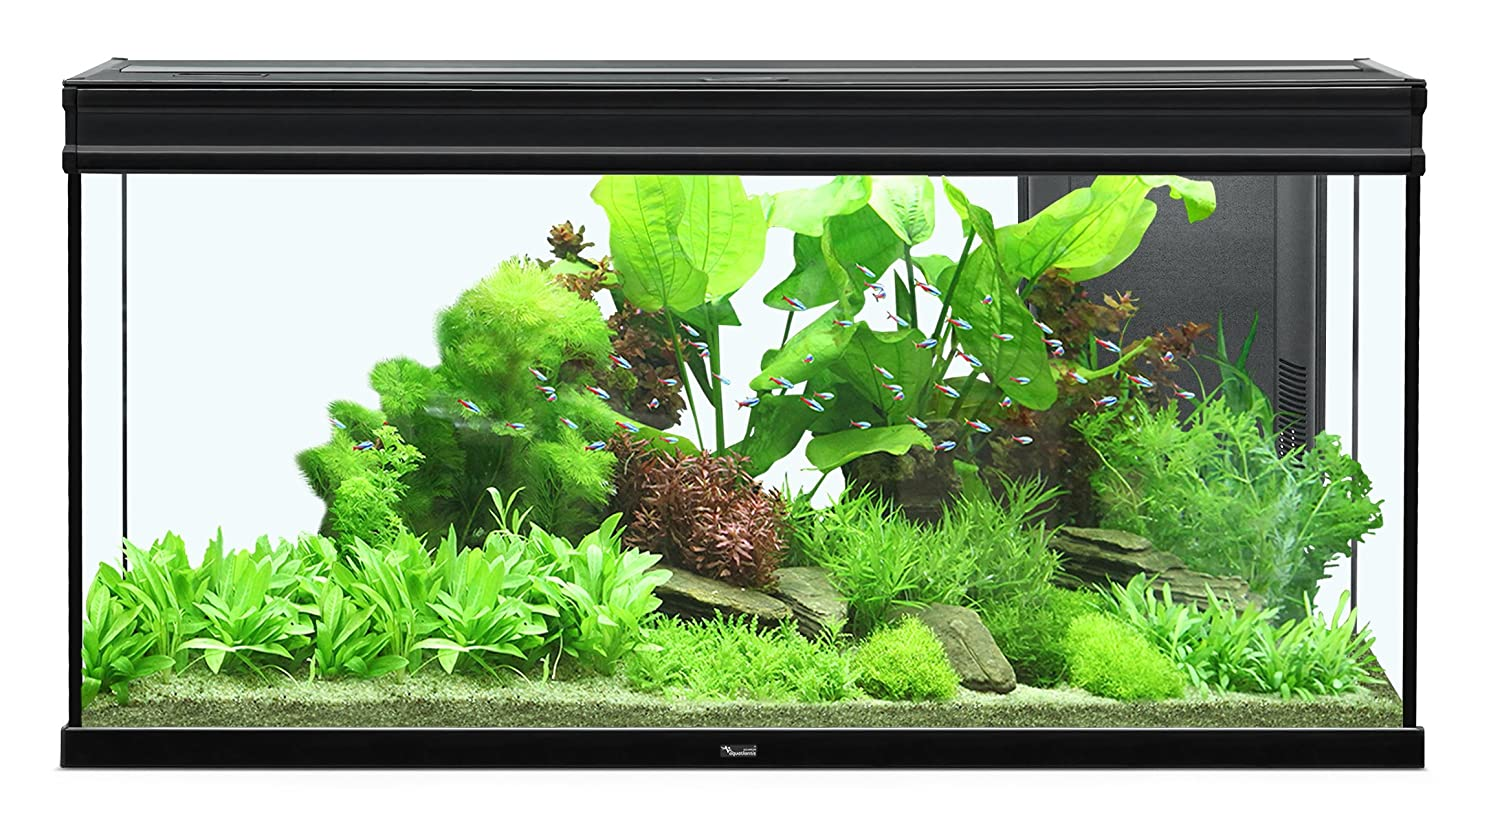 Acuario Expert LED 293 L, 120 x 40 cm, color negro: Amazon.es: Productos para mascotas